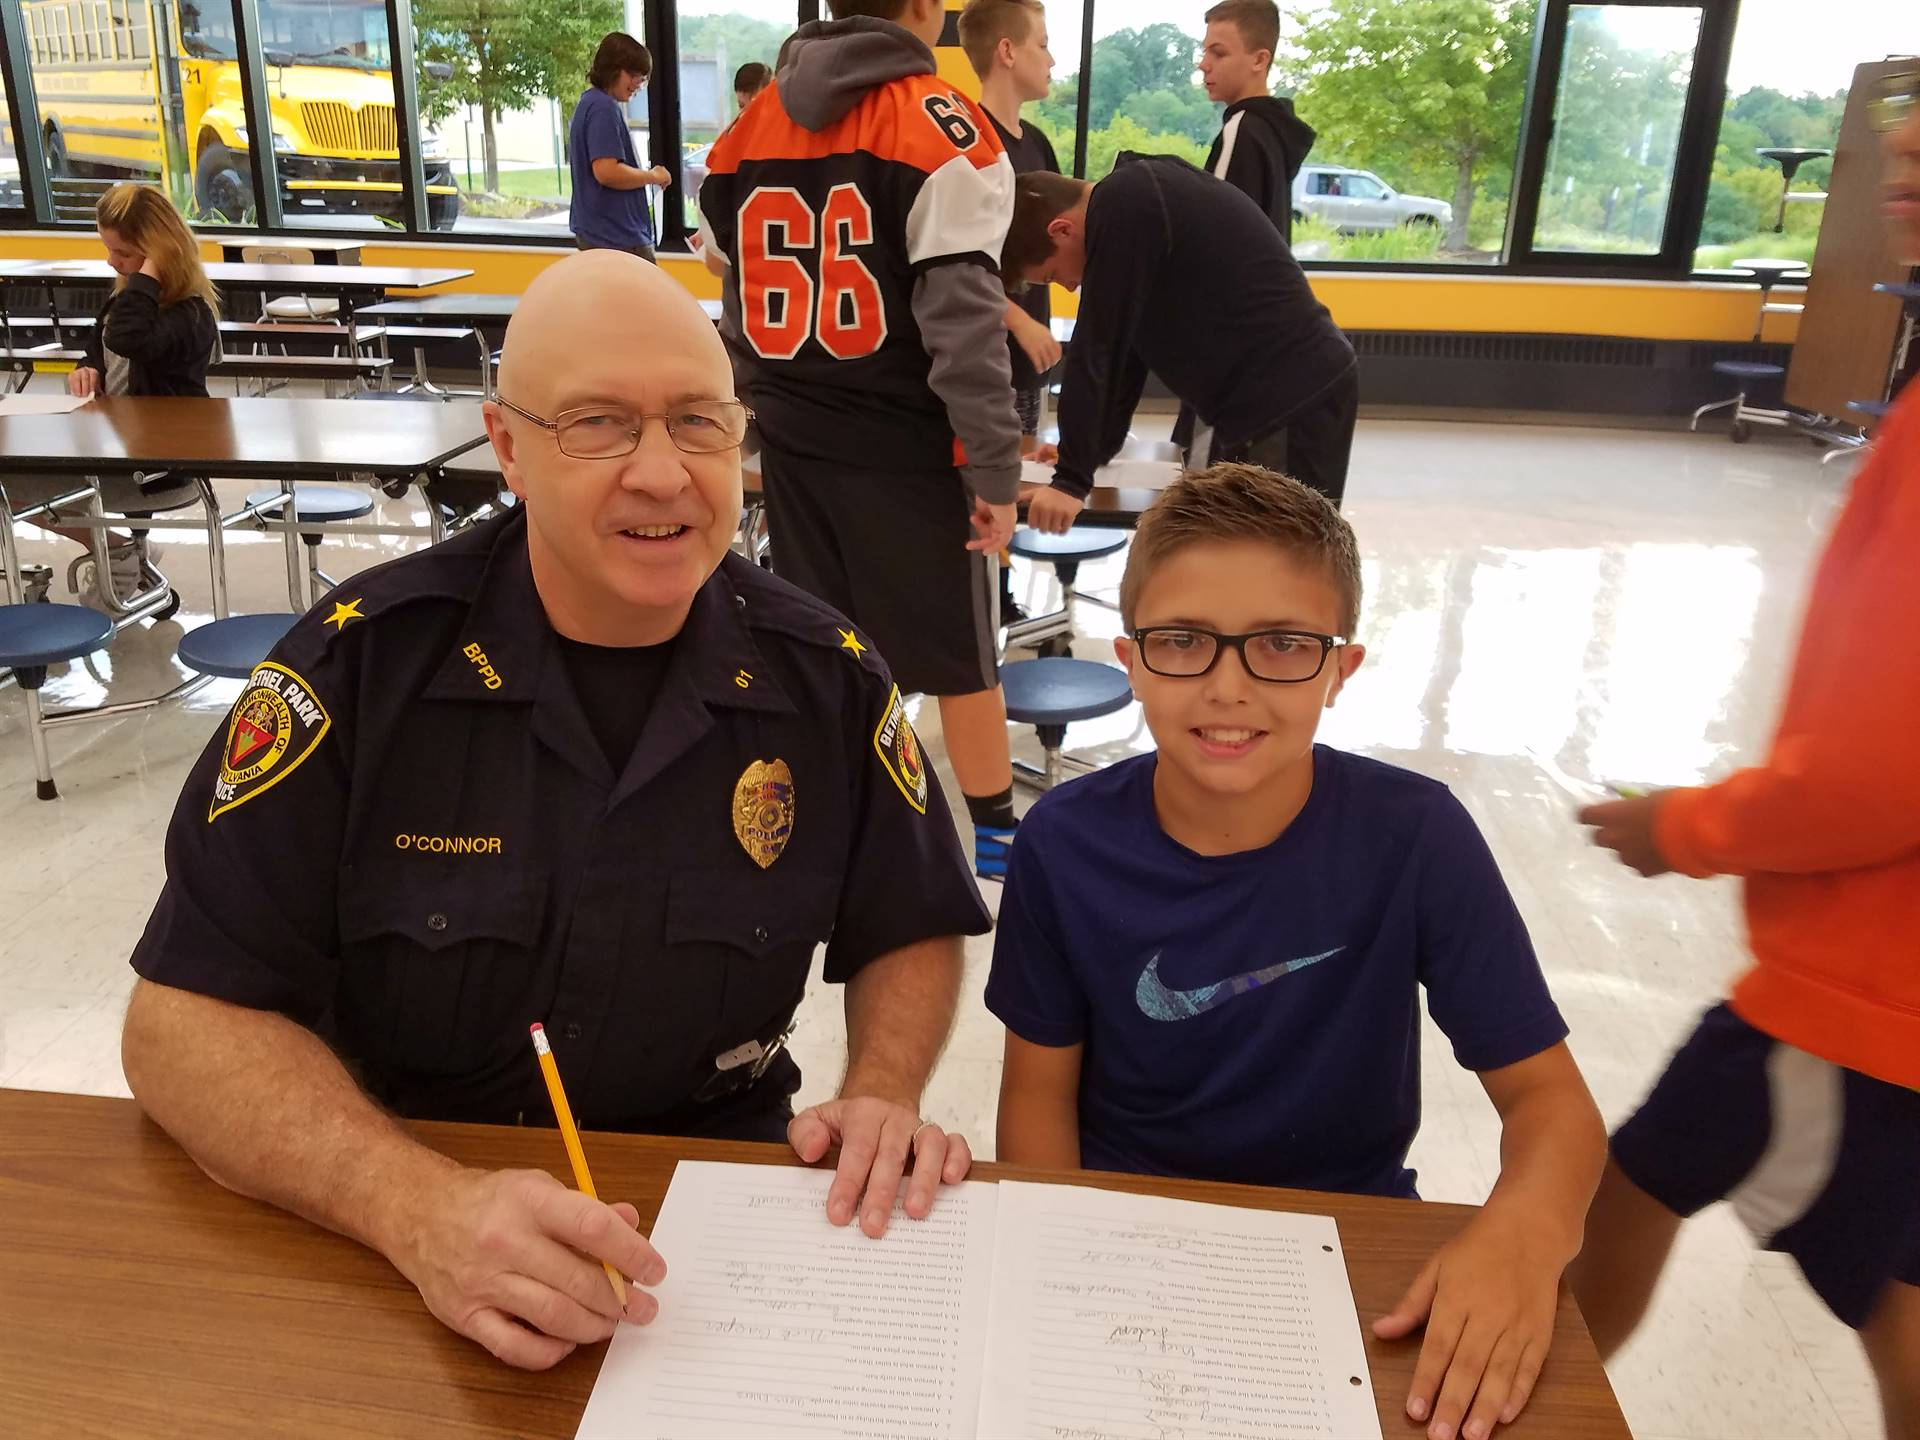 Police Chief Tim O'Connor visited Team 7C's first team day